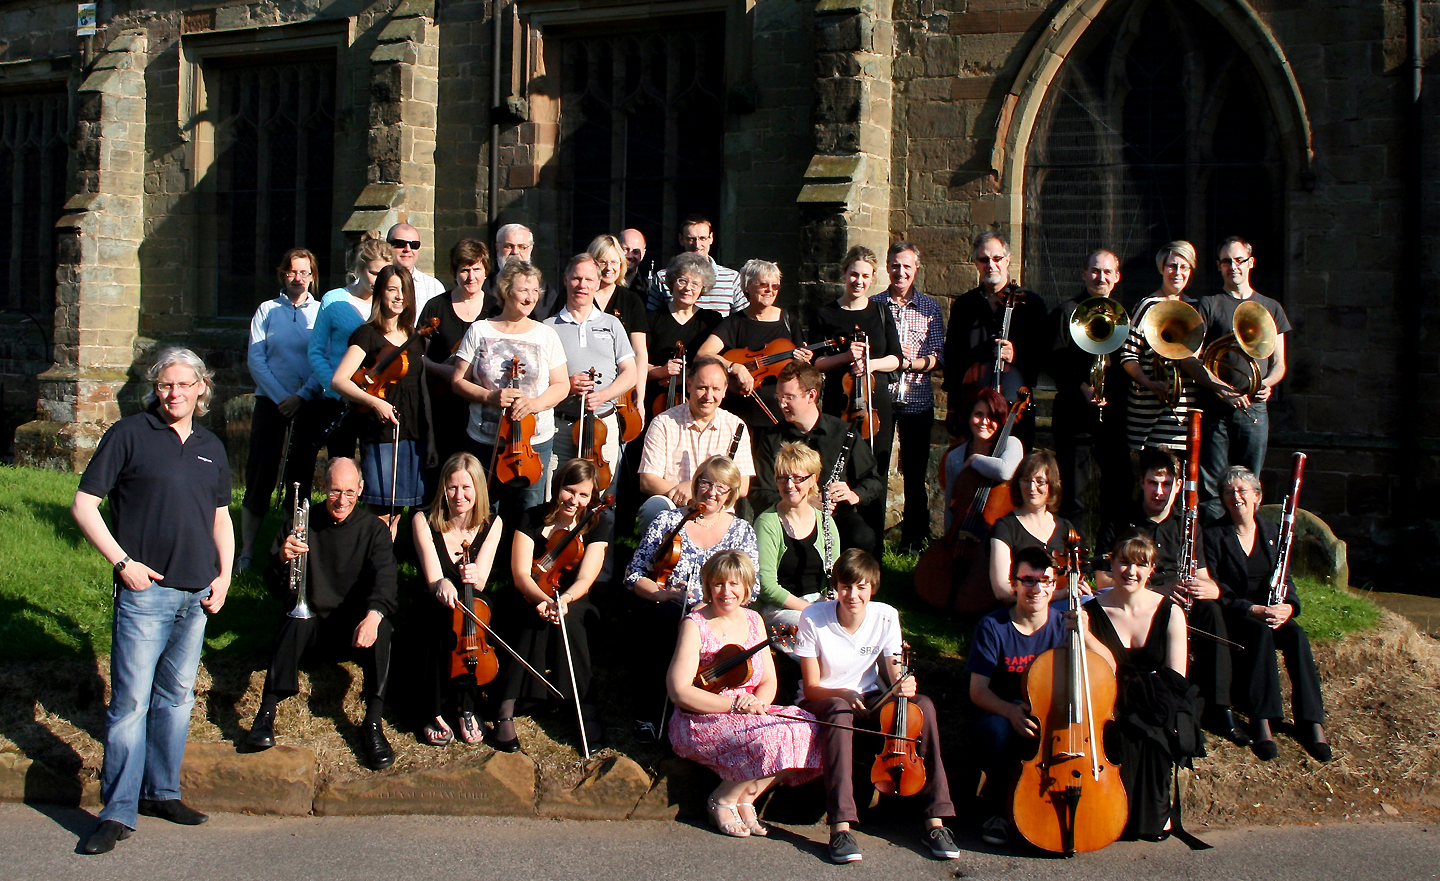 POPULAR CONCERT: The Orchestra of St John's Church is holding its latest concert this Saturday. SP